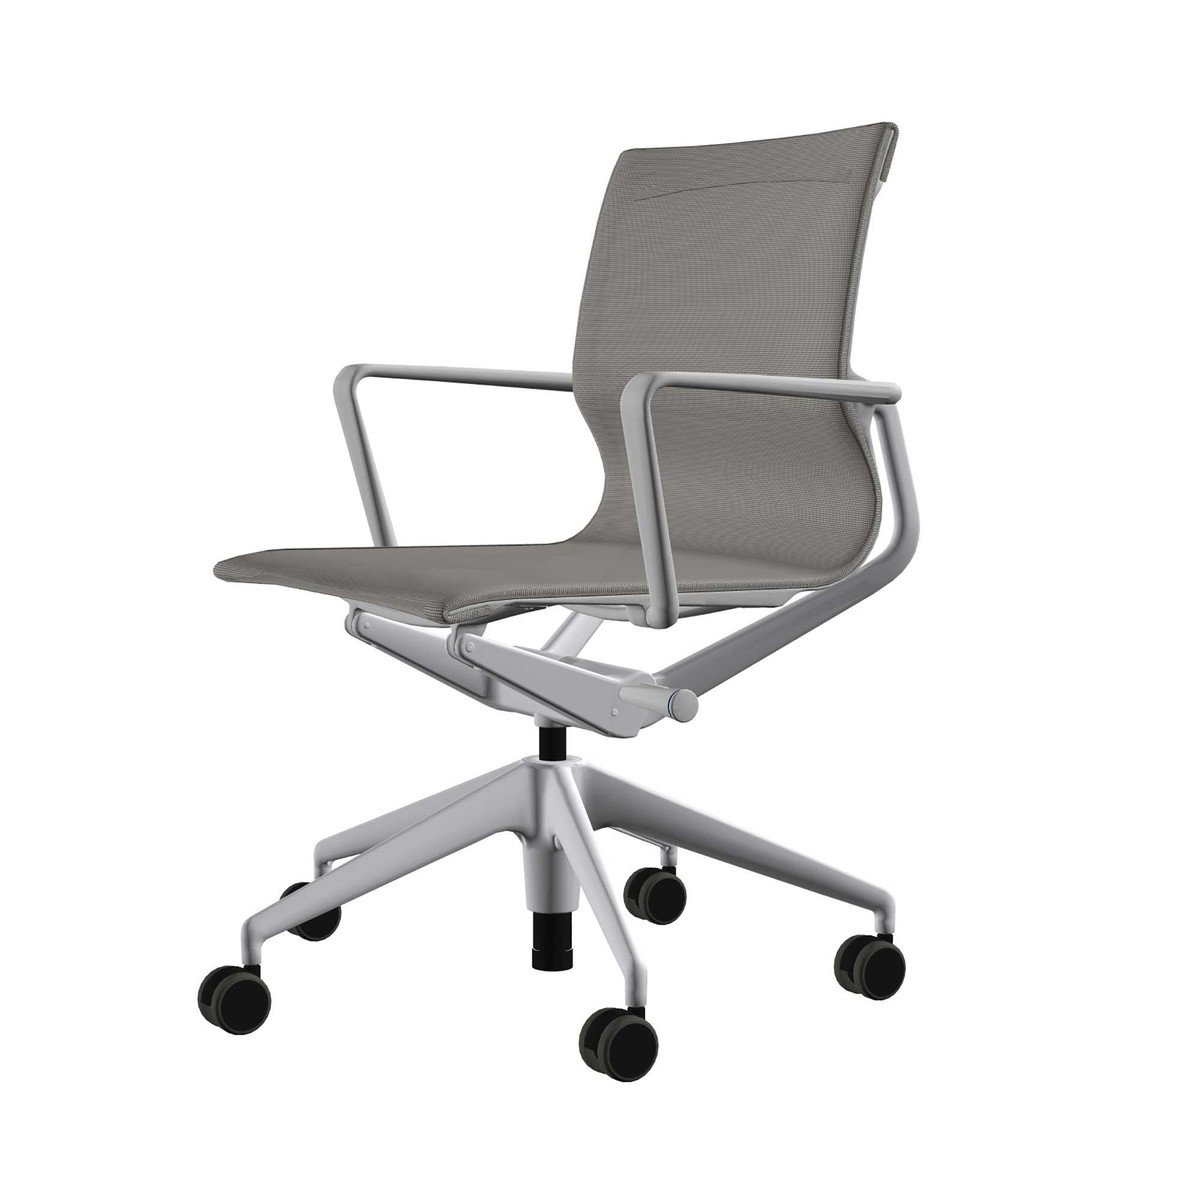 vitra office chair price lift recliner physix meda ambientedirect